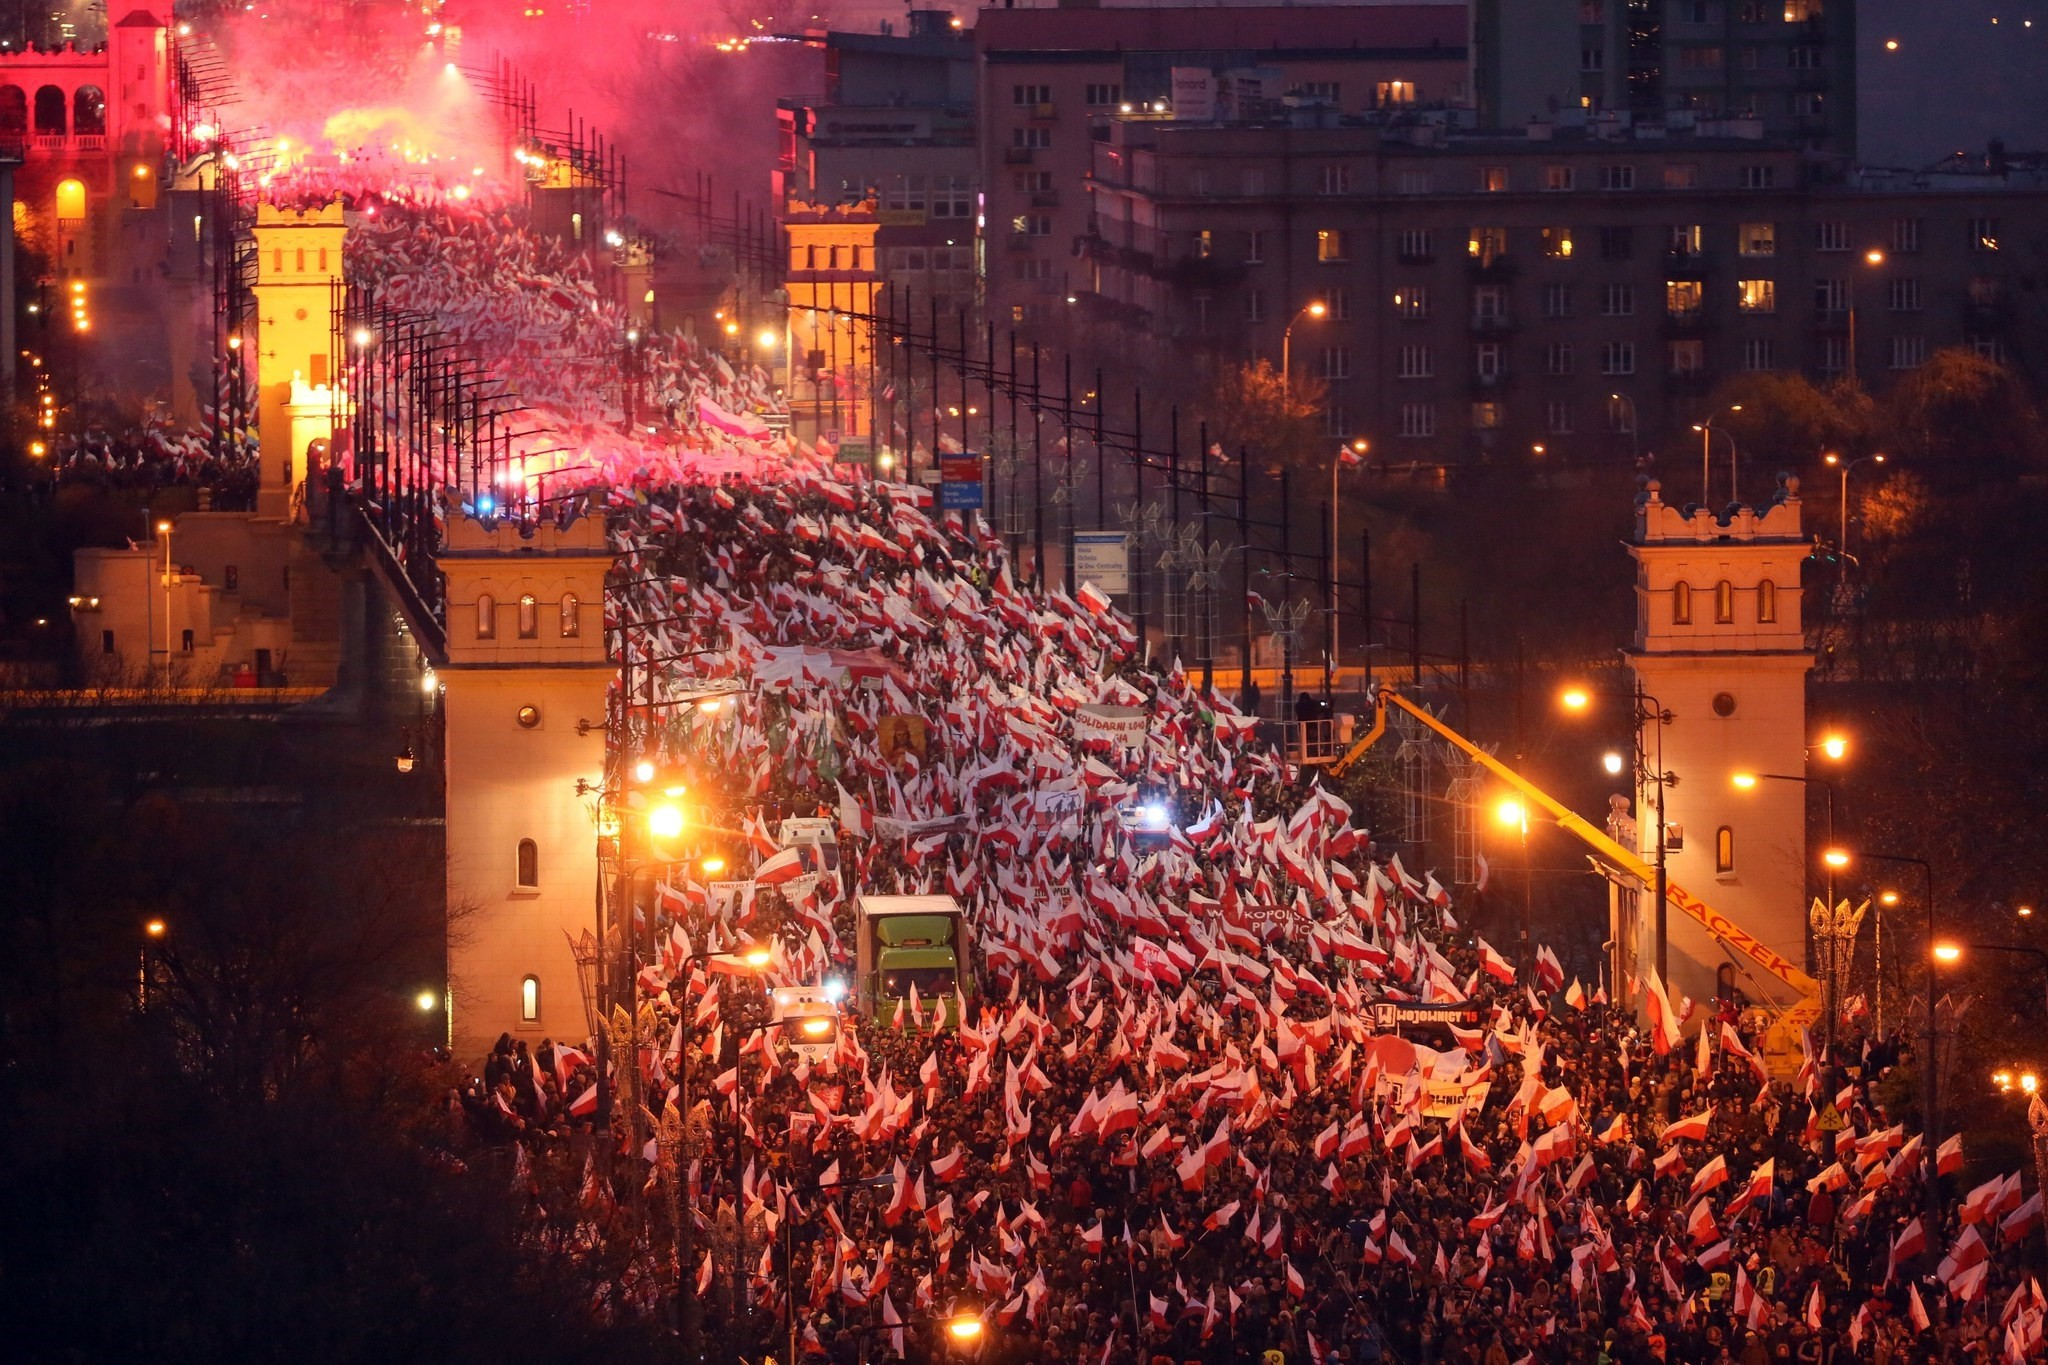 Polish nationalists walk through the Poniatowski Bridge as they take part in the March of Independence 2017 under the slogan 'We want God' as part of Polish Independence Day celebrations in Warsaw, Poland, 11 November 2017. (EPA Photo)